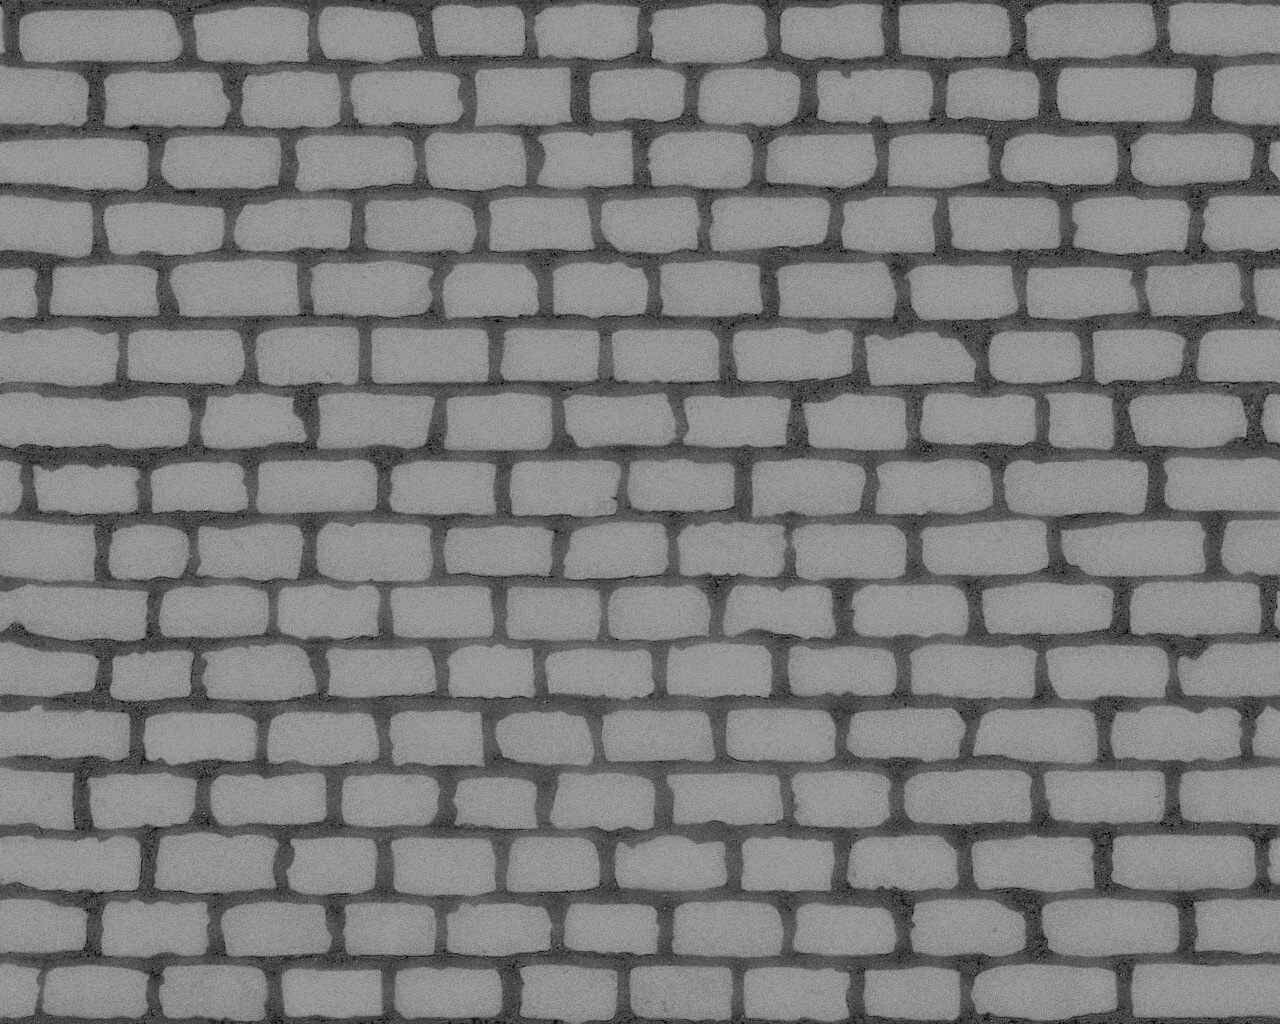 Gray Cartoon Brick Wall Texture : Brick wall backgrounds psd vector eps jpg download